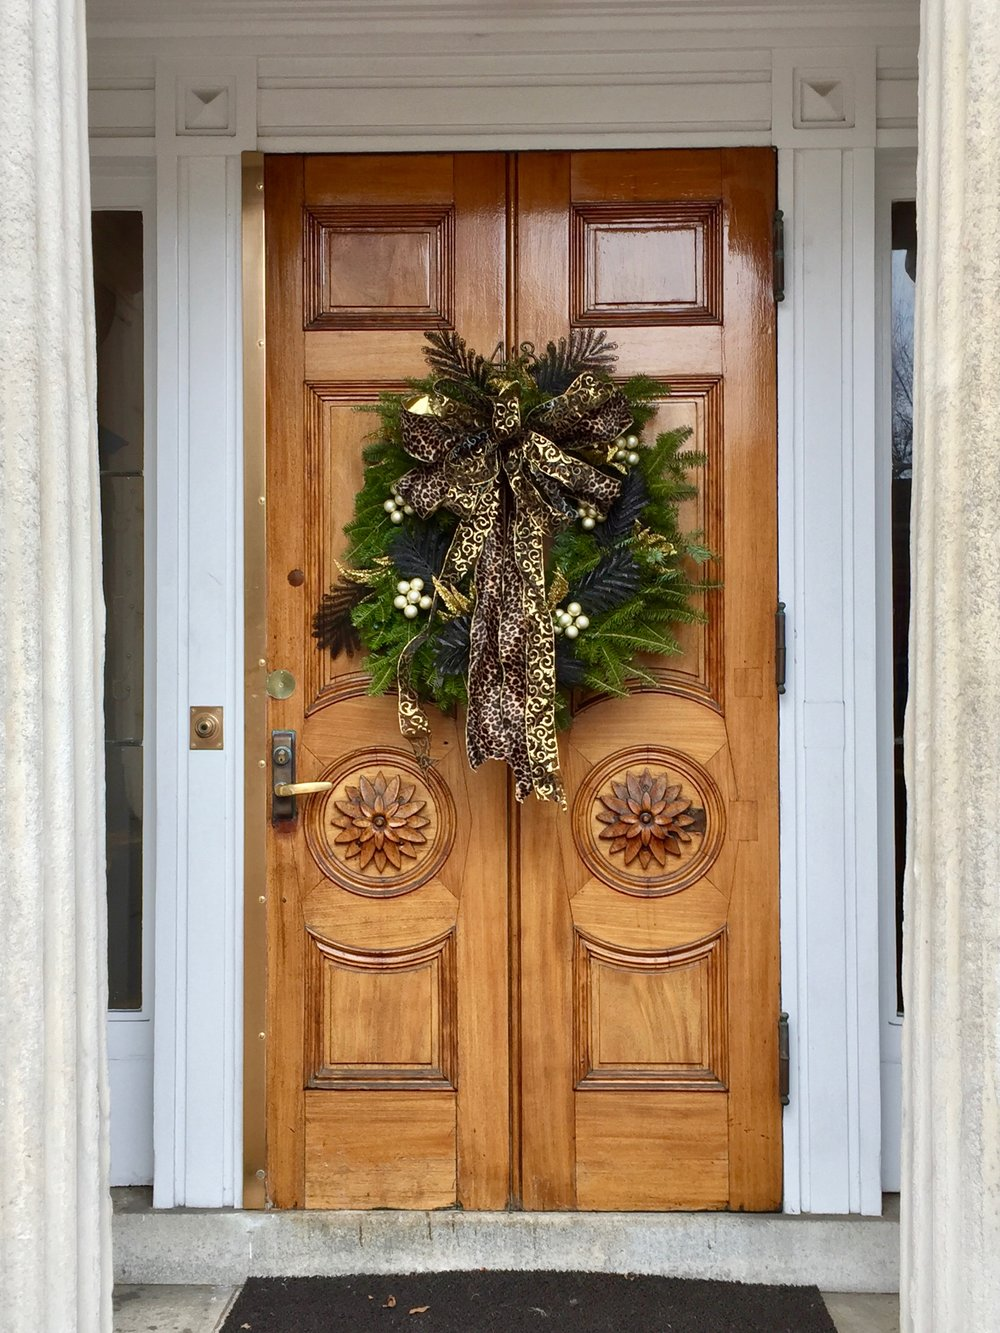 Beacon Hill Door Christmas Boston.jpg